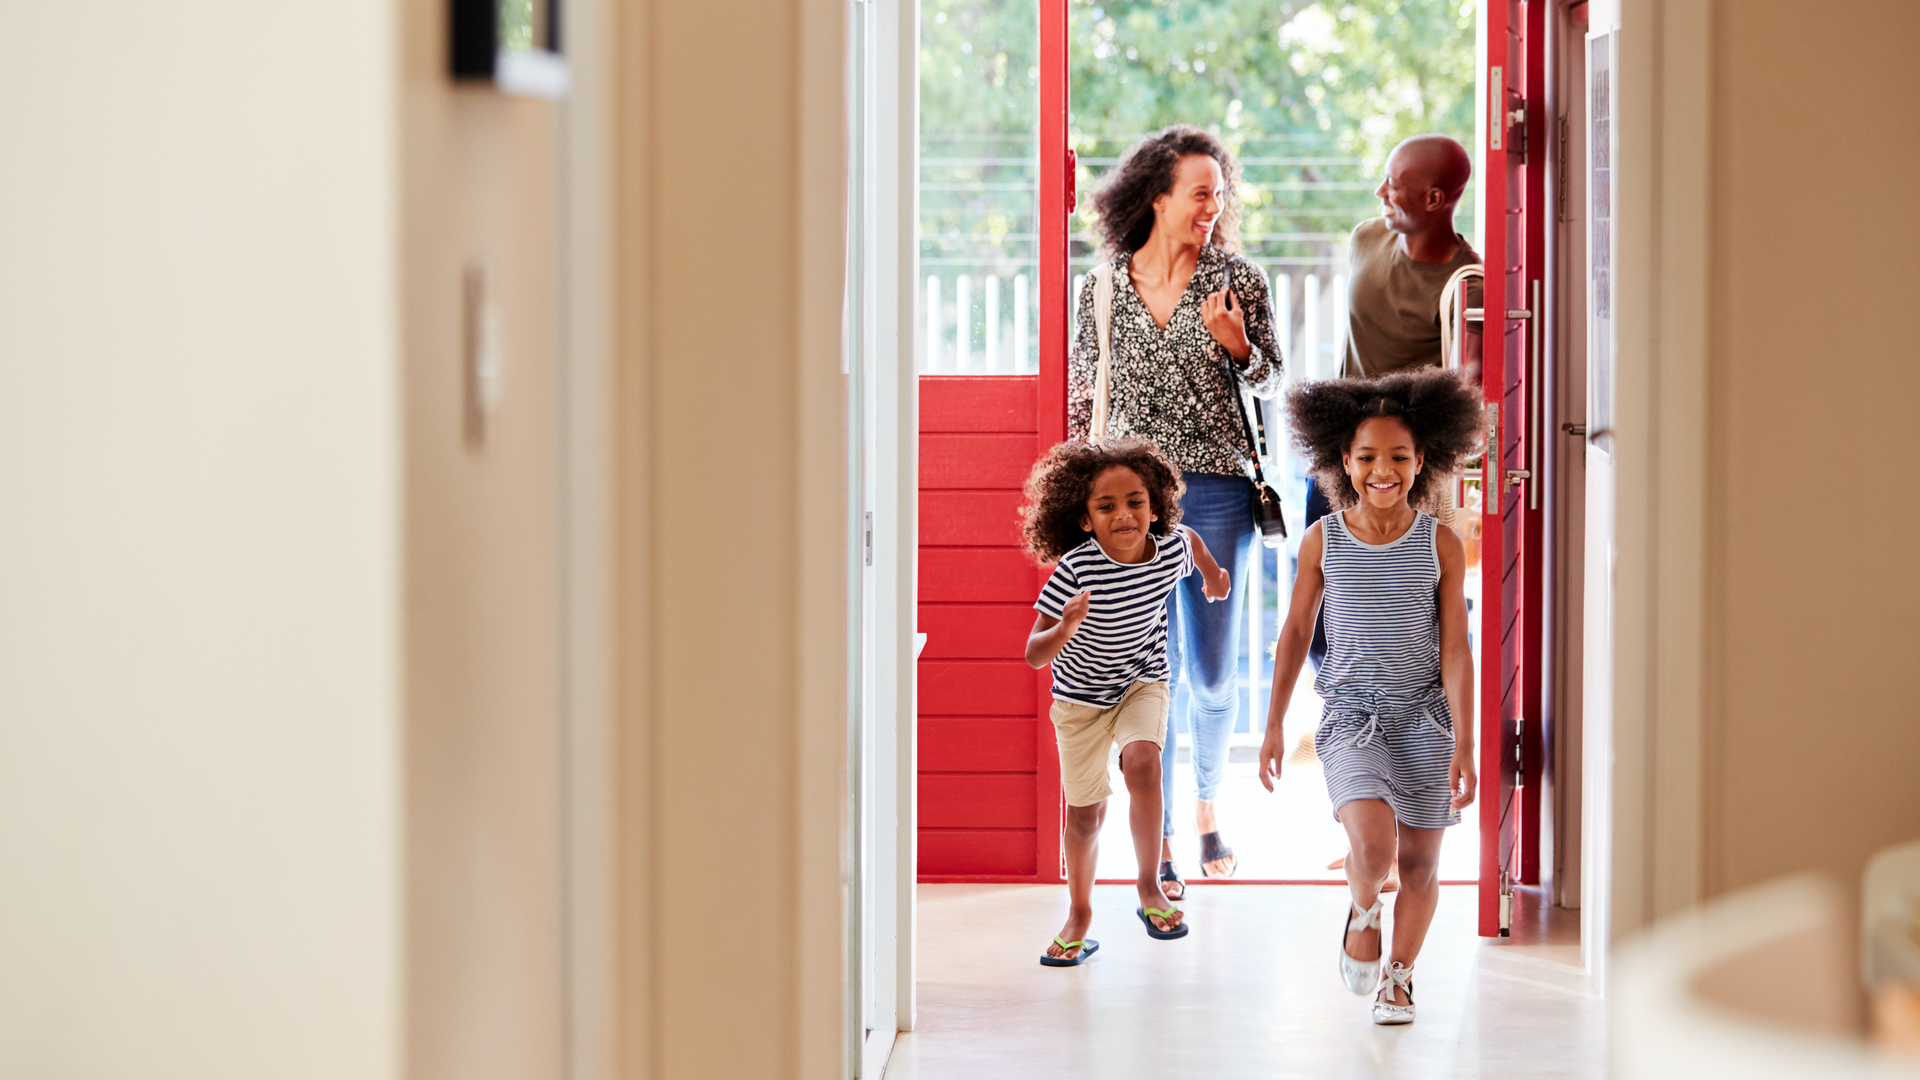 Family entering home with children excitedly running.